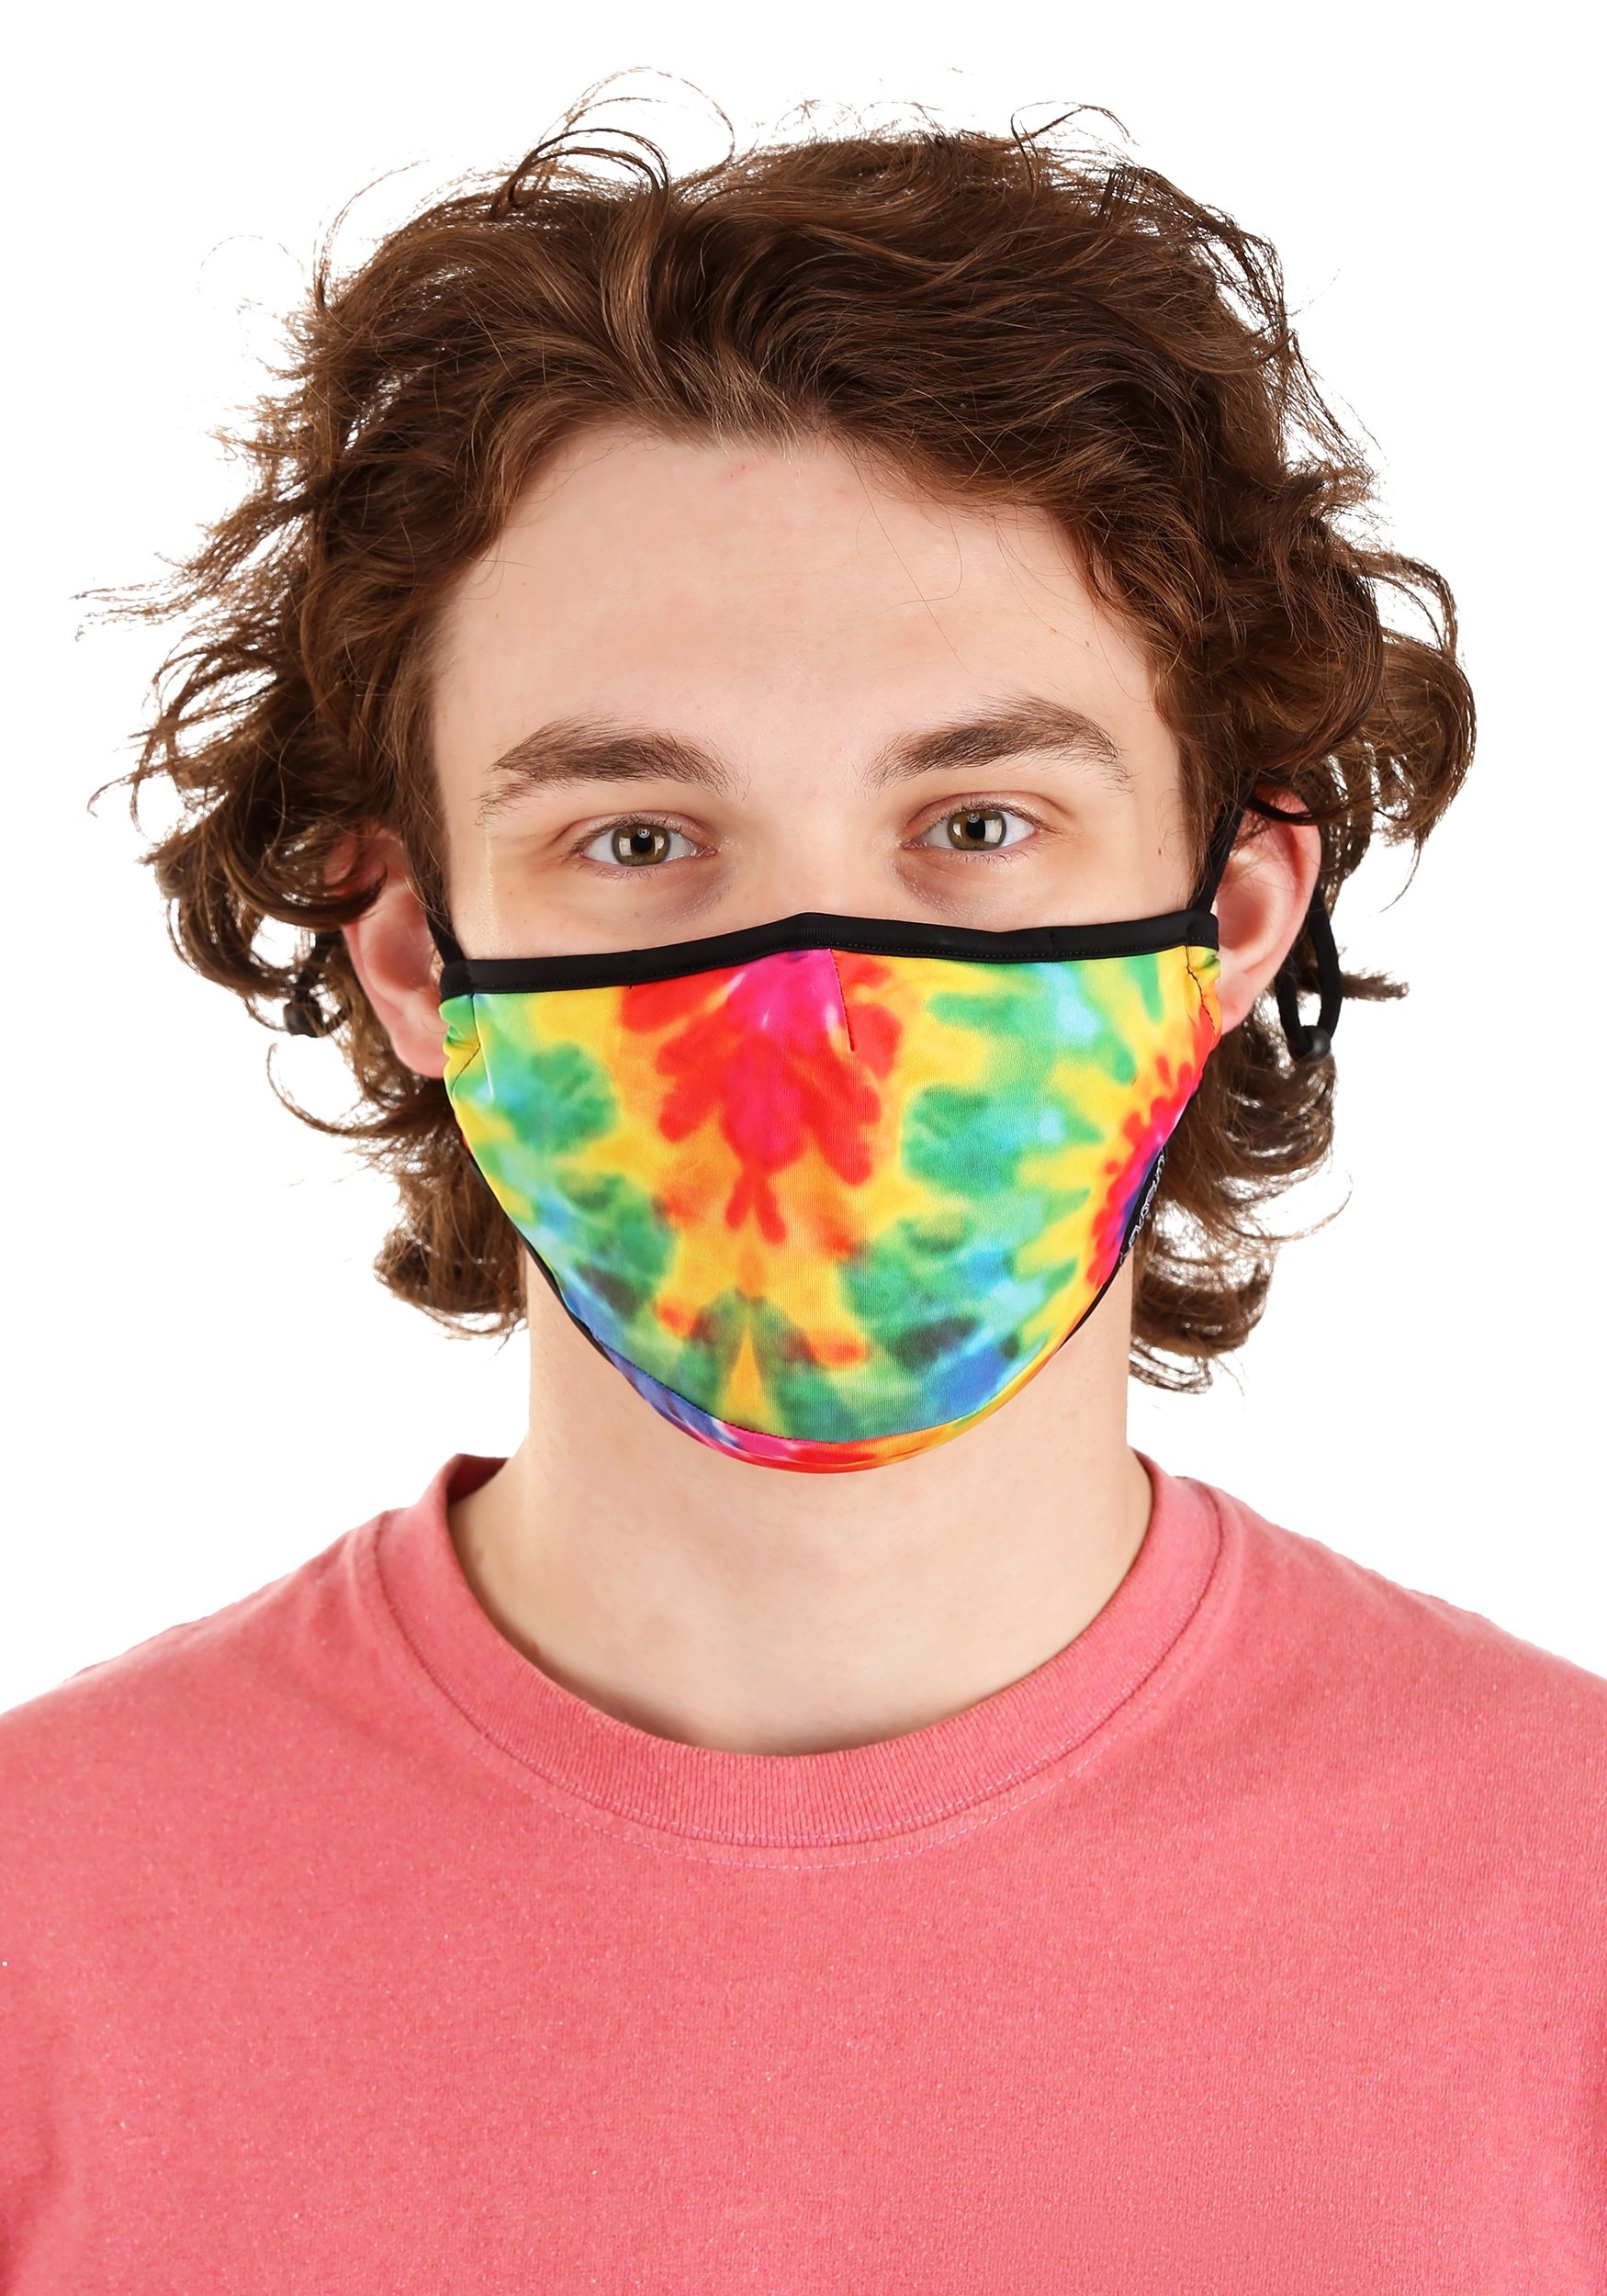 Protective Tie Dye Fabric Face Covering Mask